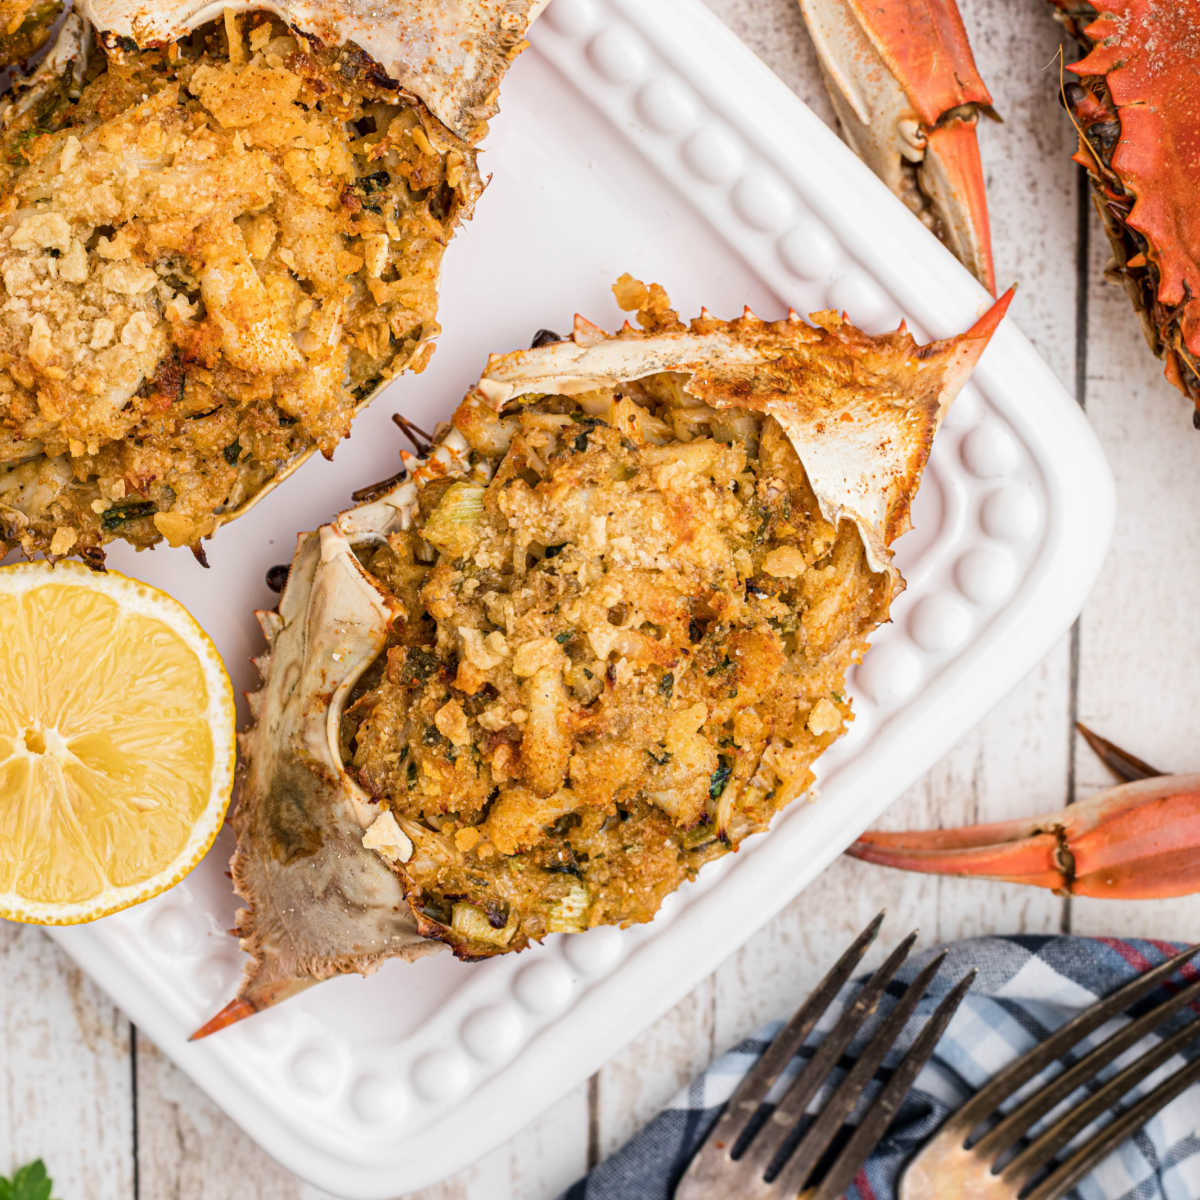 close up of a stuffed crab with some boiled crabs on the outside